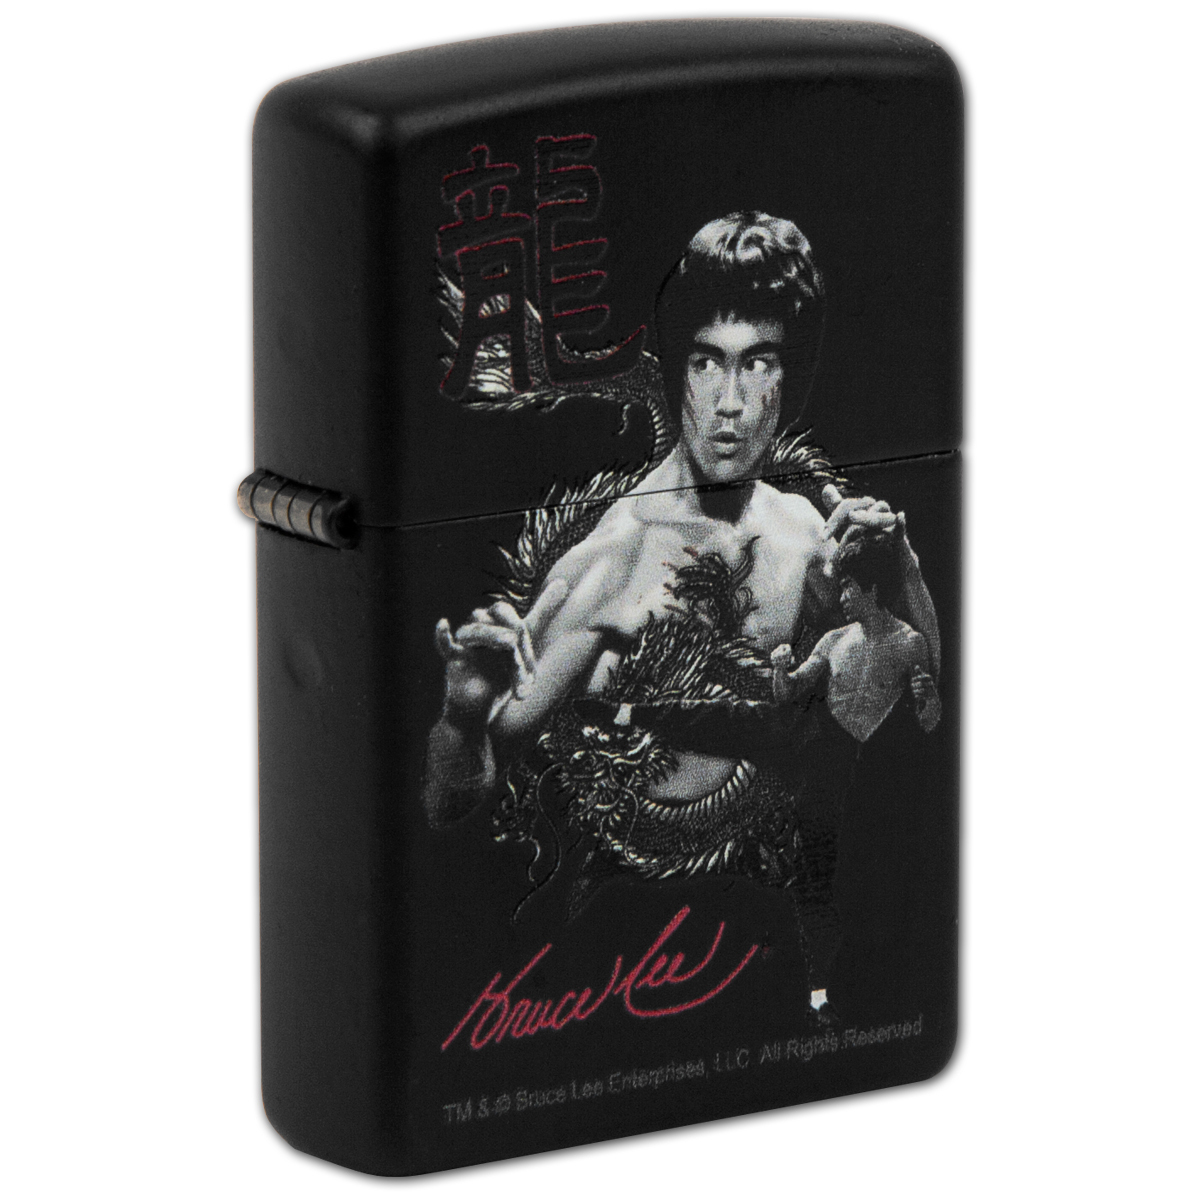 Bruce Lee The Dragon Matte Black Zippo